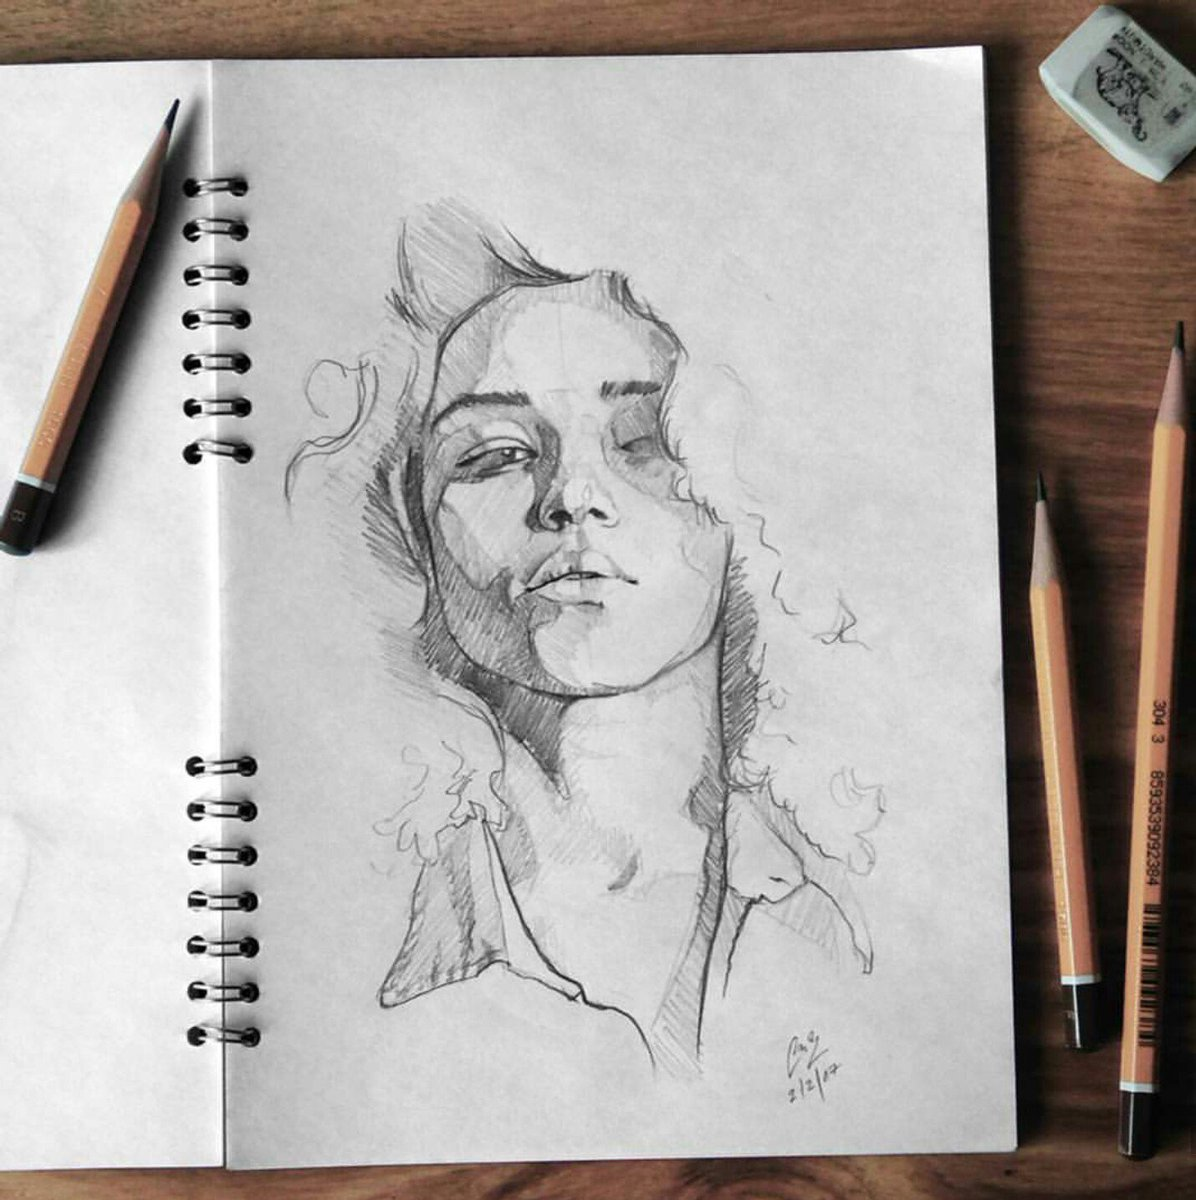 Download AKVIS Sketch Software and Userguide for Free Sketch drawings from photos